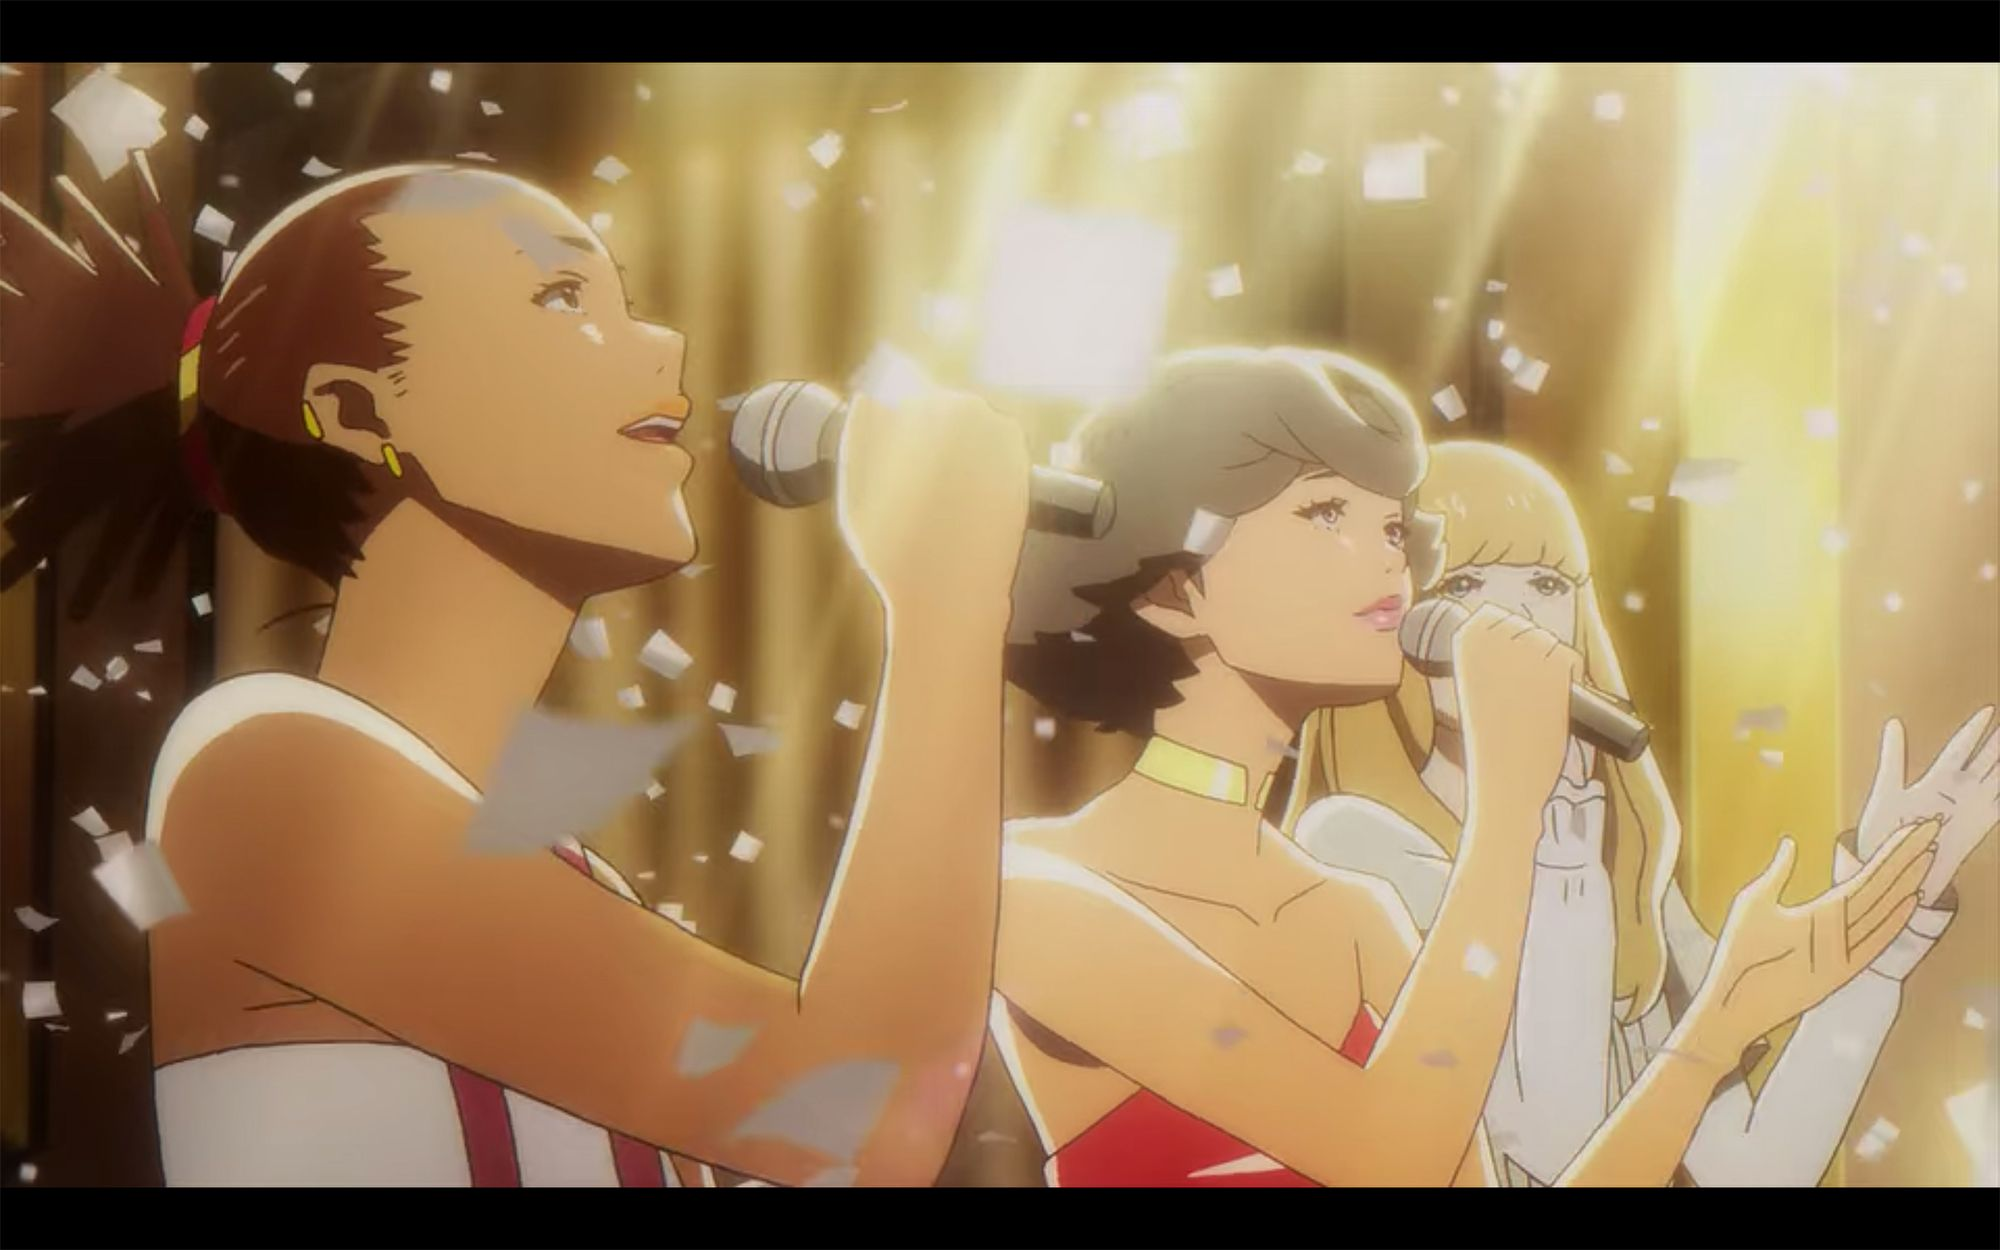 Solidarity and Song in Carole & Tuesday